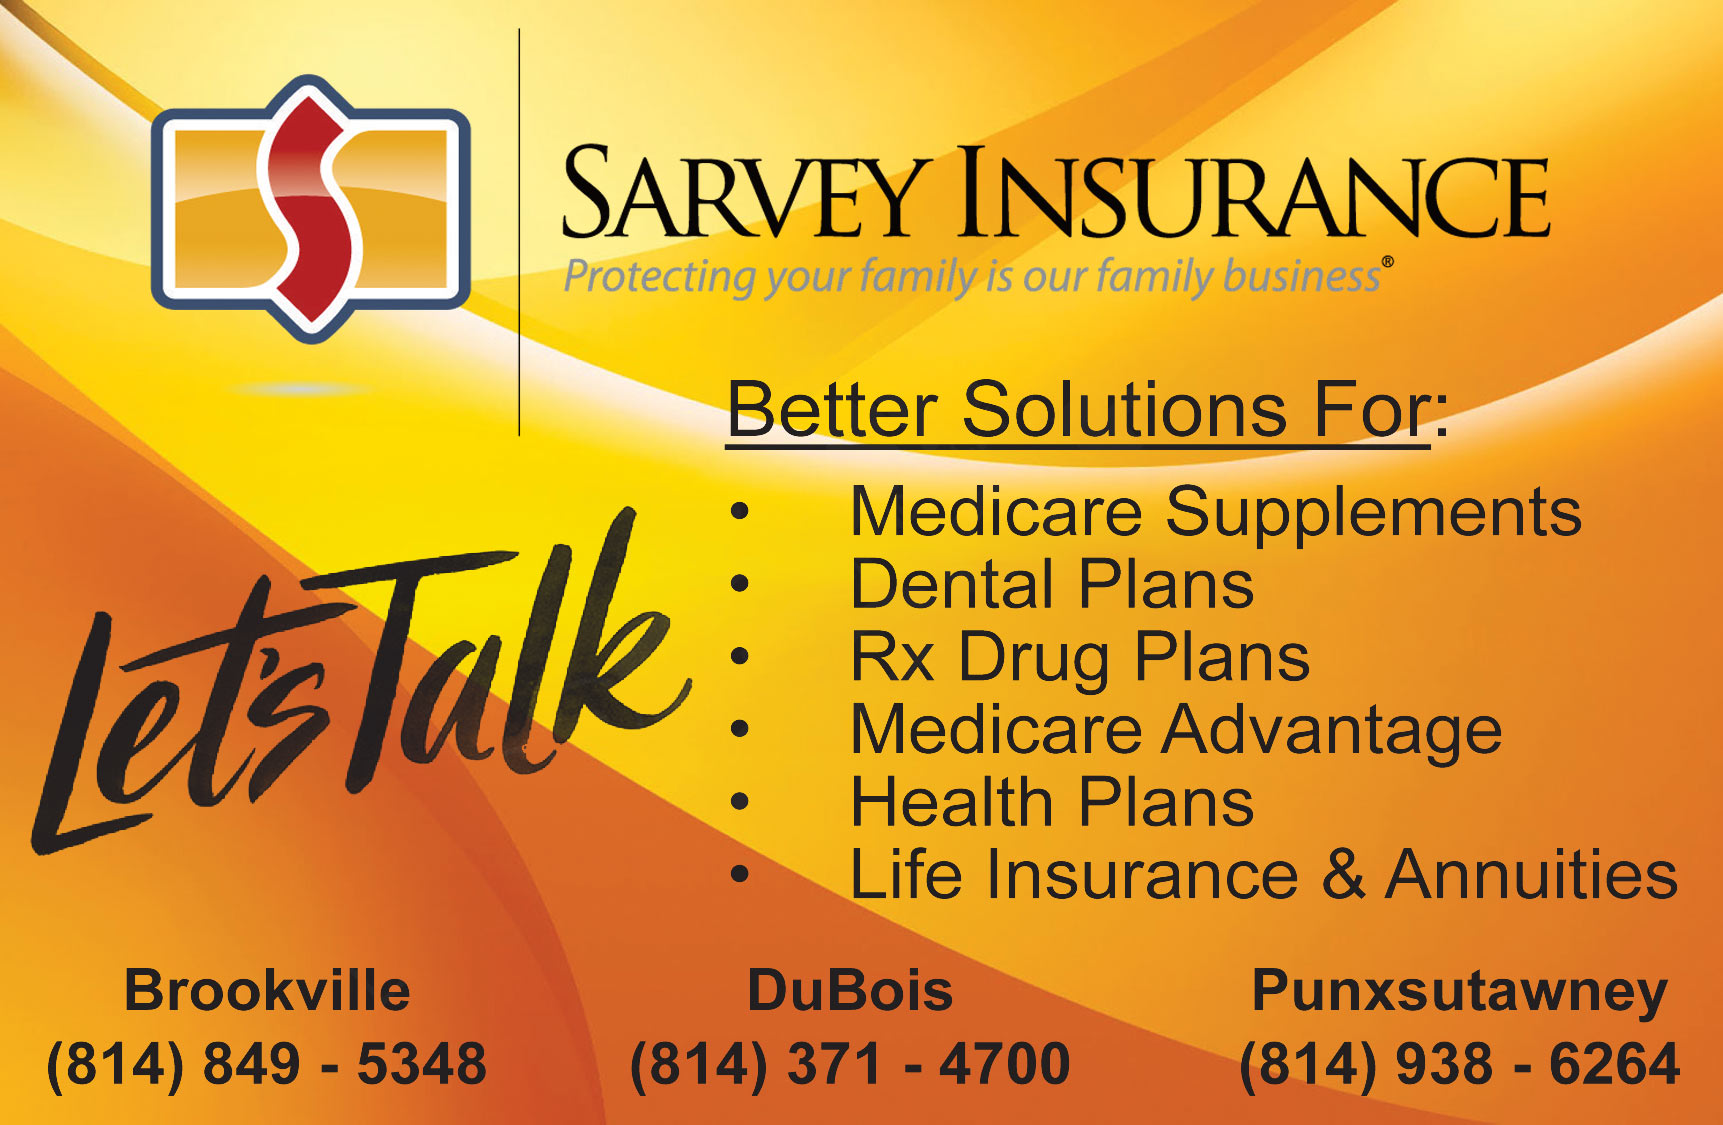 sarvey-insurance-lets-talk